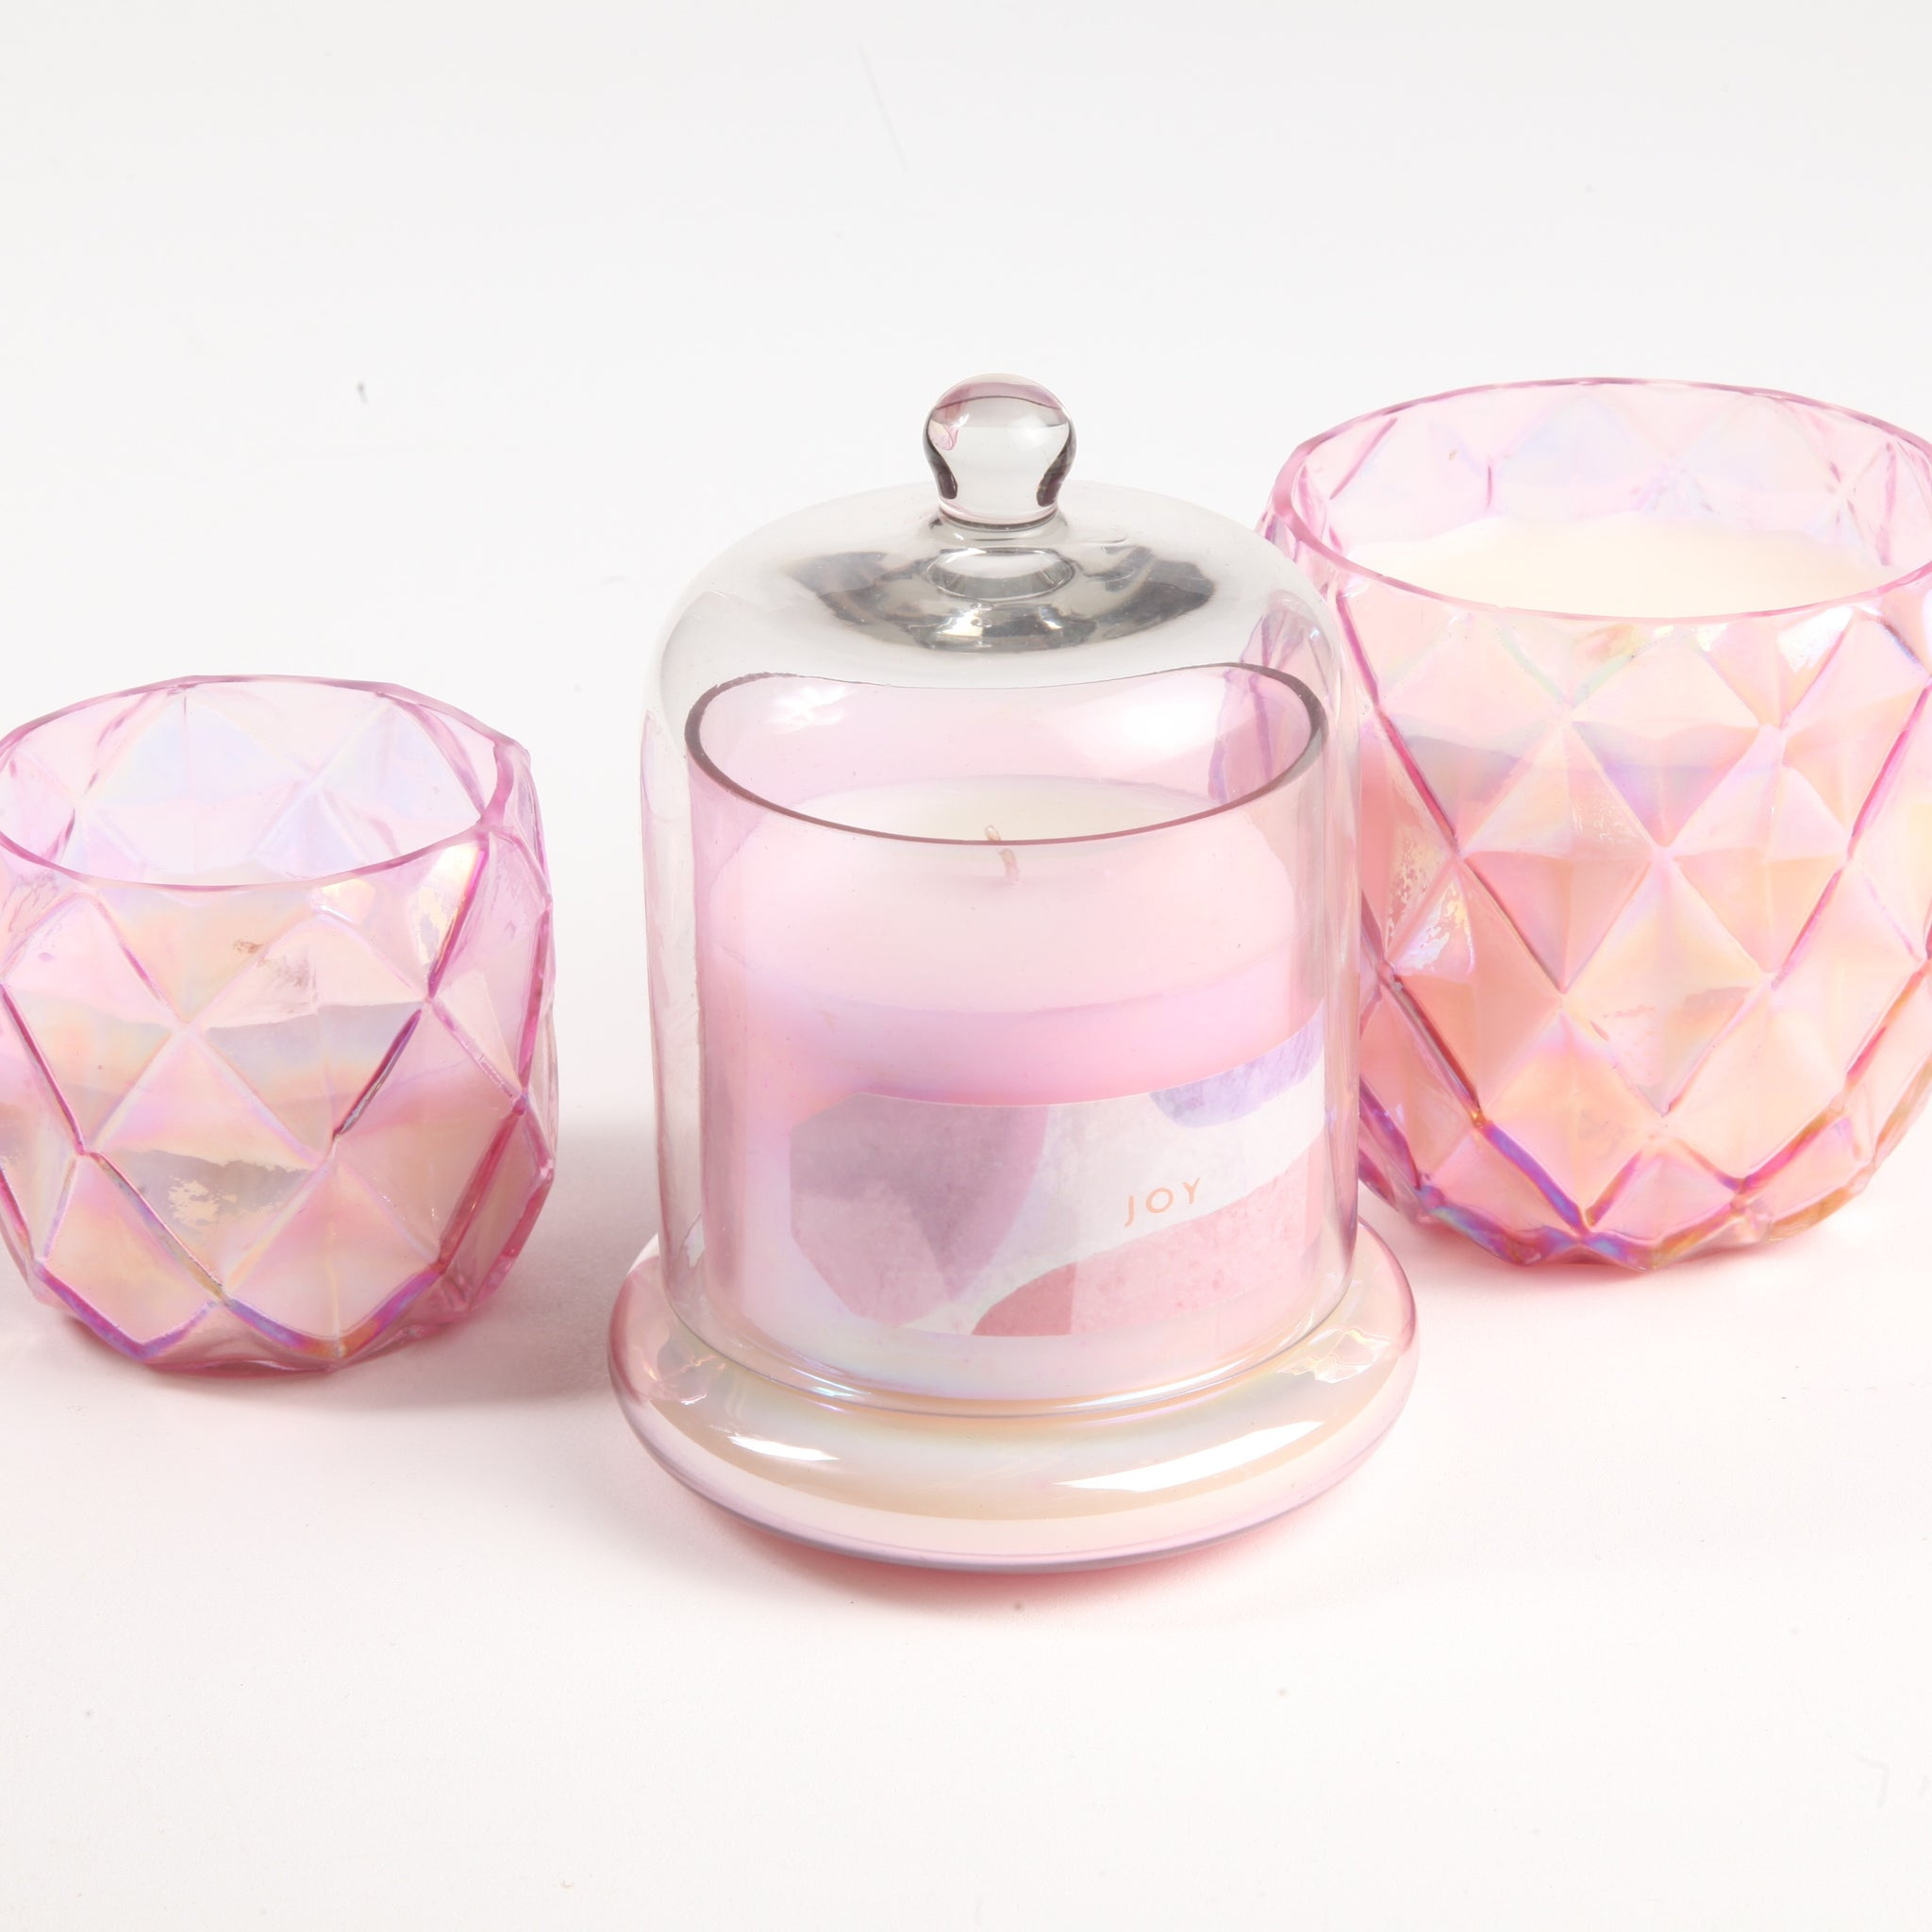 Joy Candle Collection